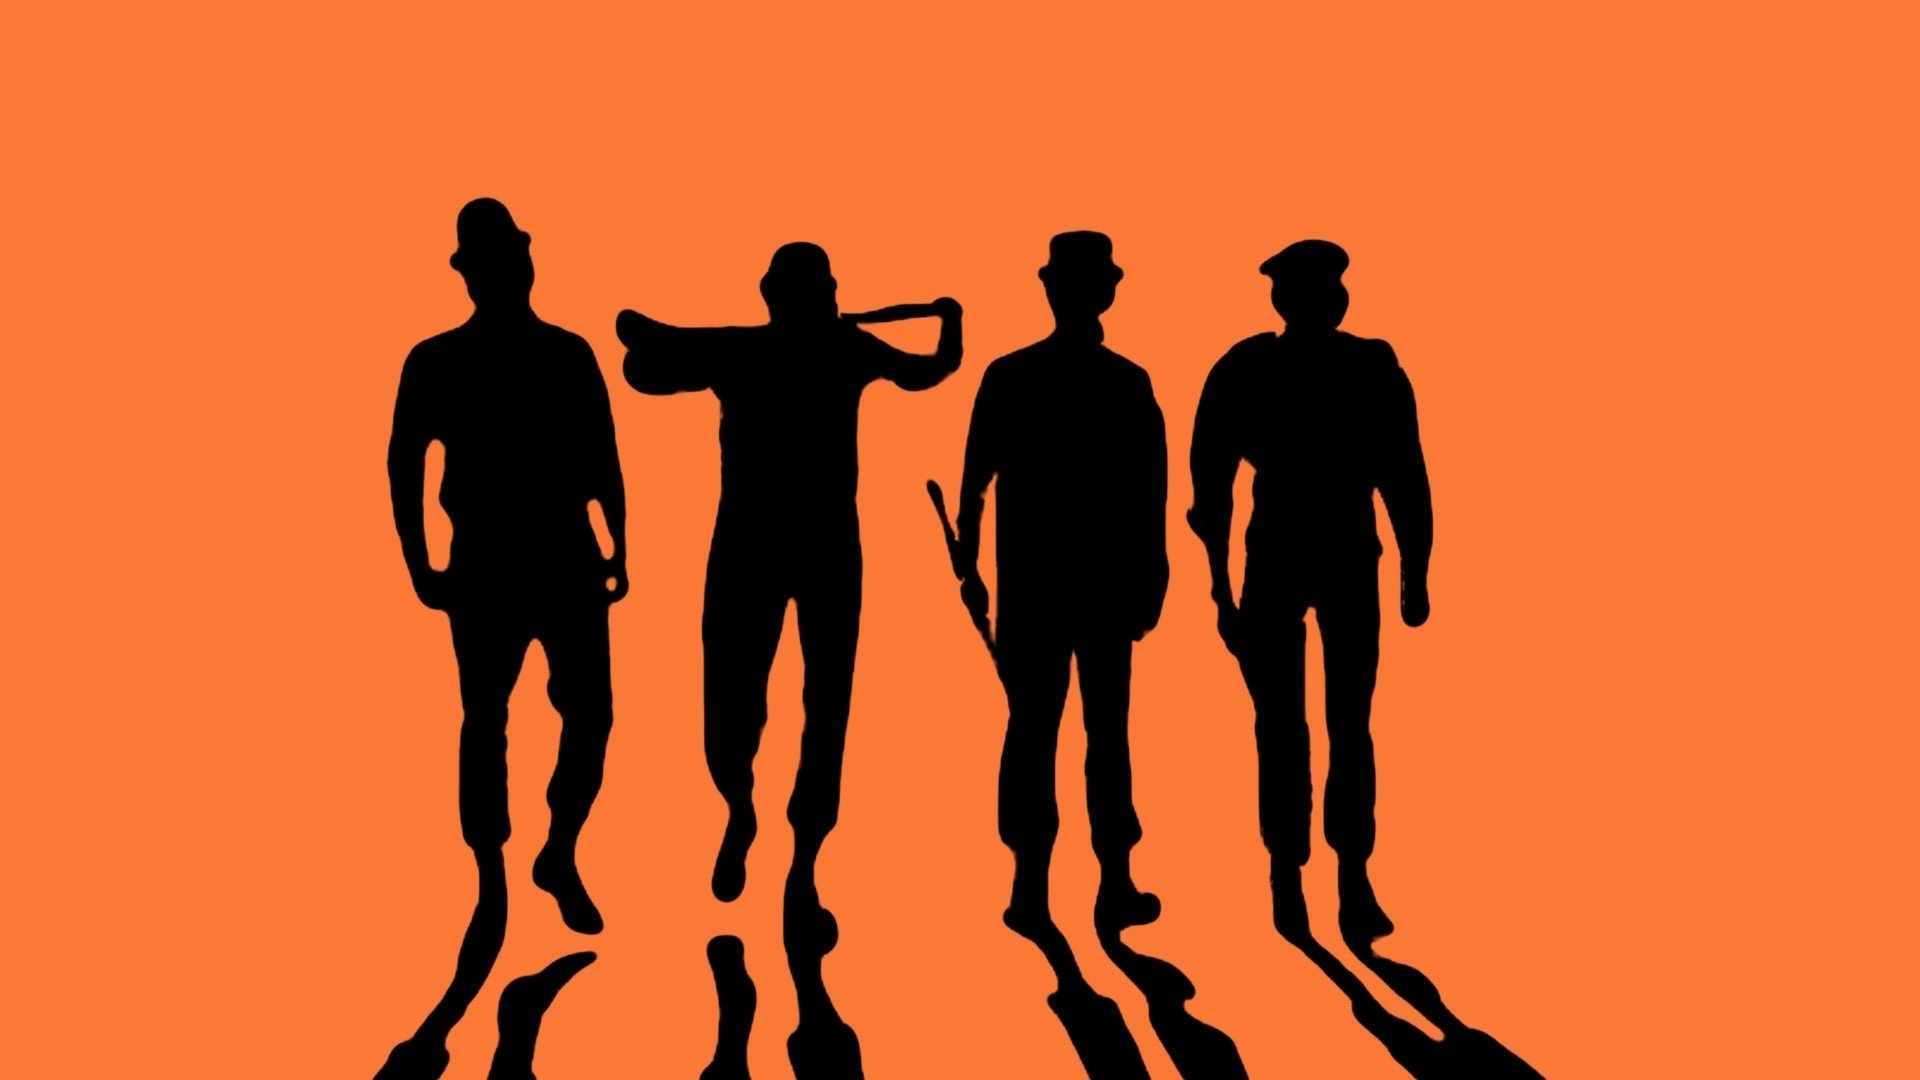 49 a clockwork orange hd wallpapers | background images - wallpaper